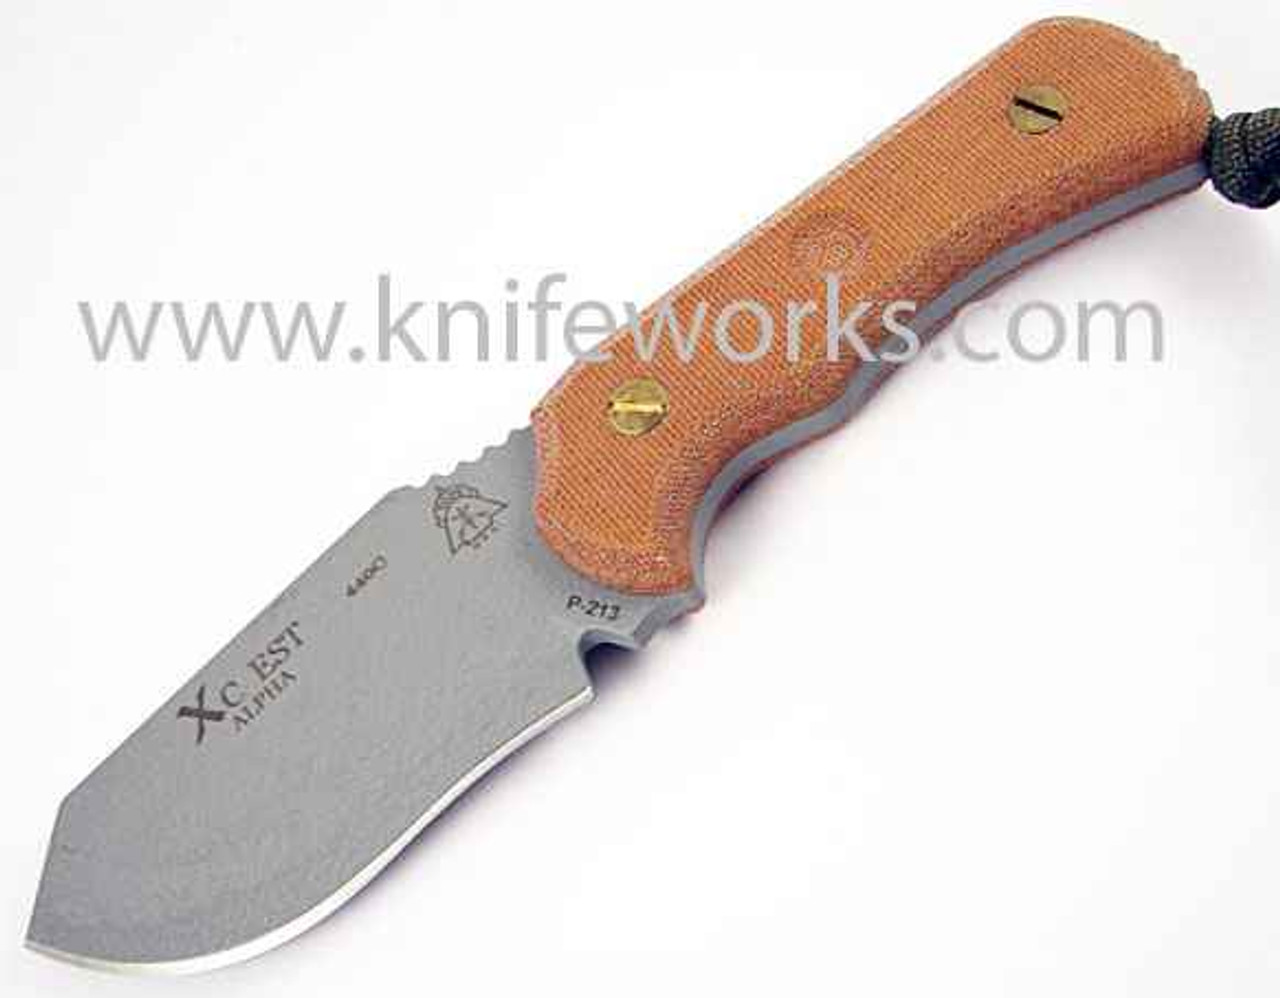 TOPS XcEST Alpha w/Coyote Tan Nylon Sheath and Survival Kit